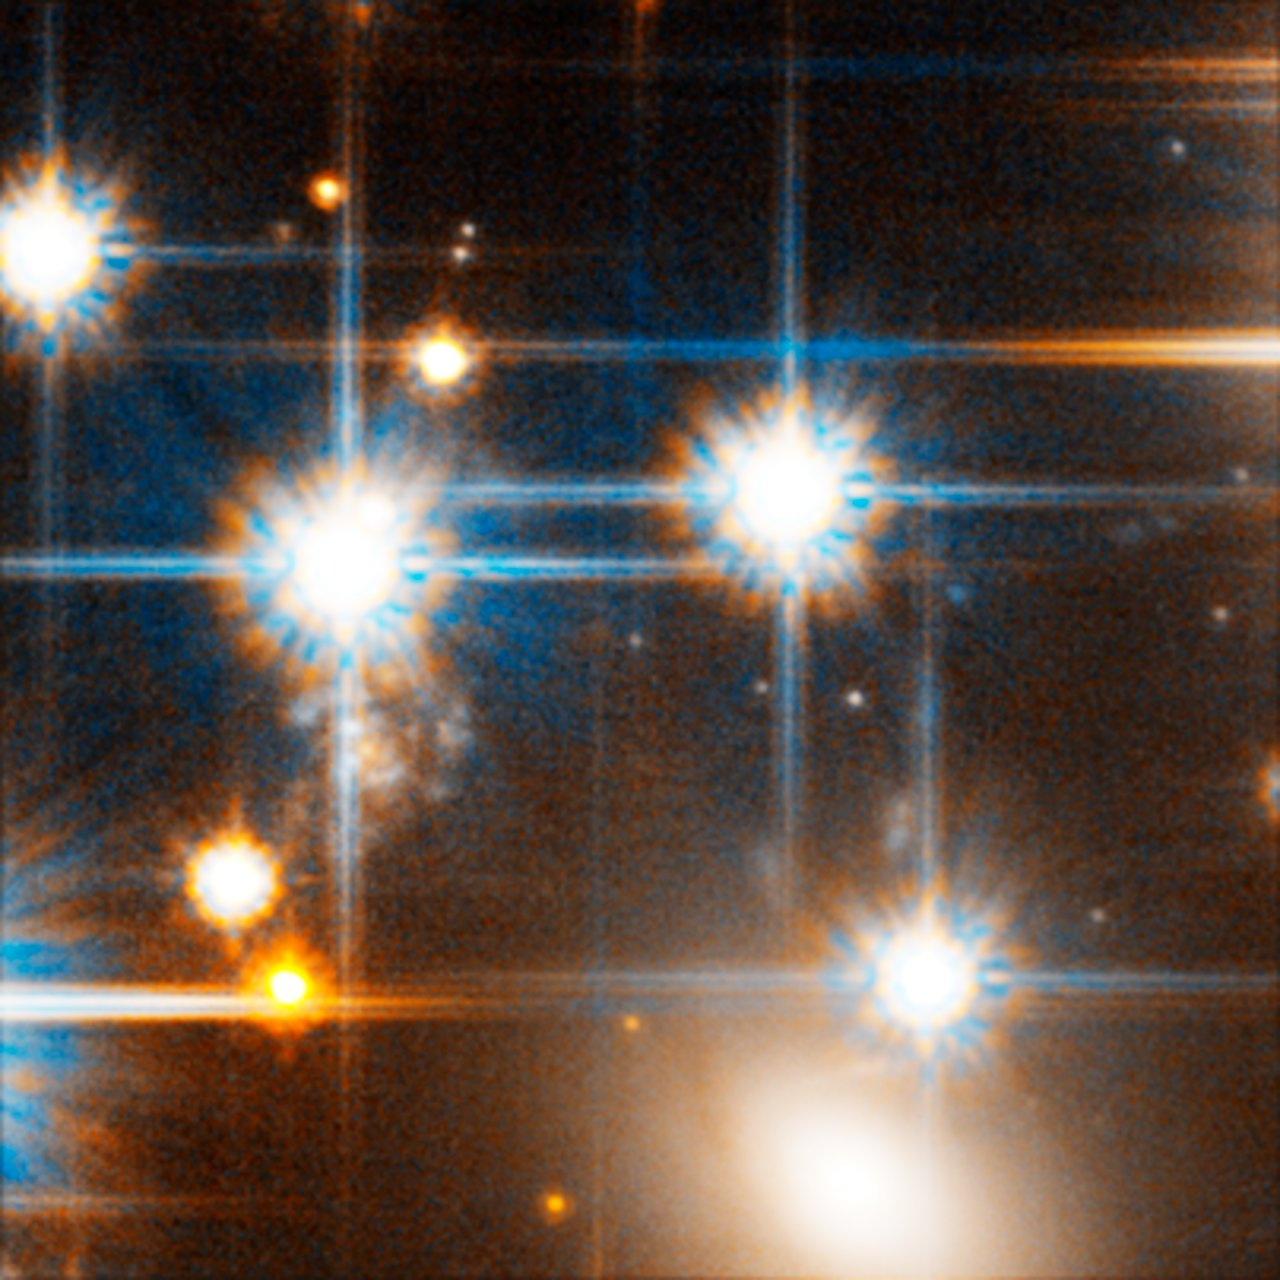 Faint White Dwarf Star in Globular Cluster NGC 6397